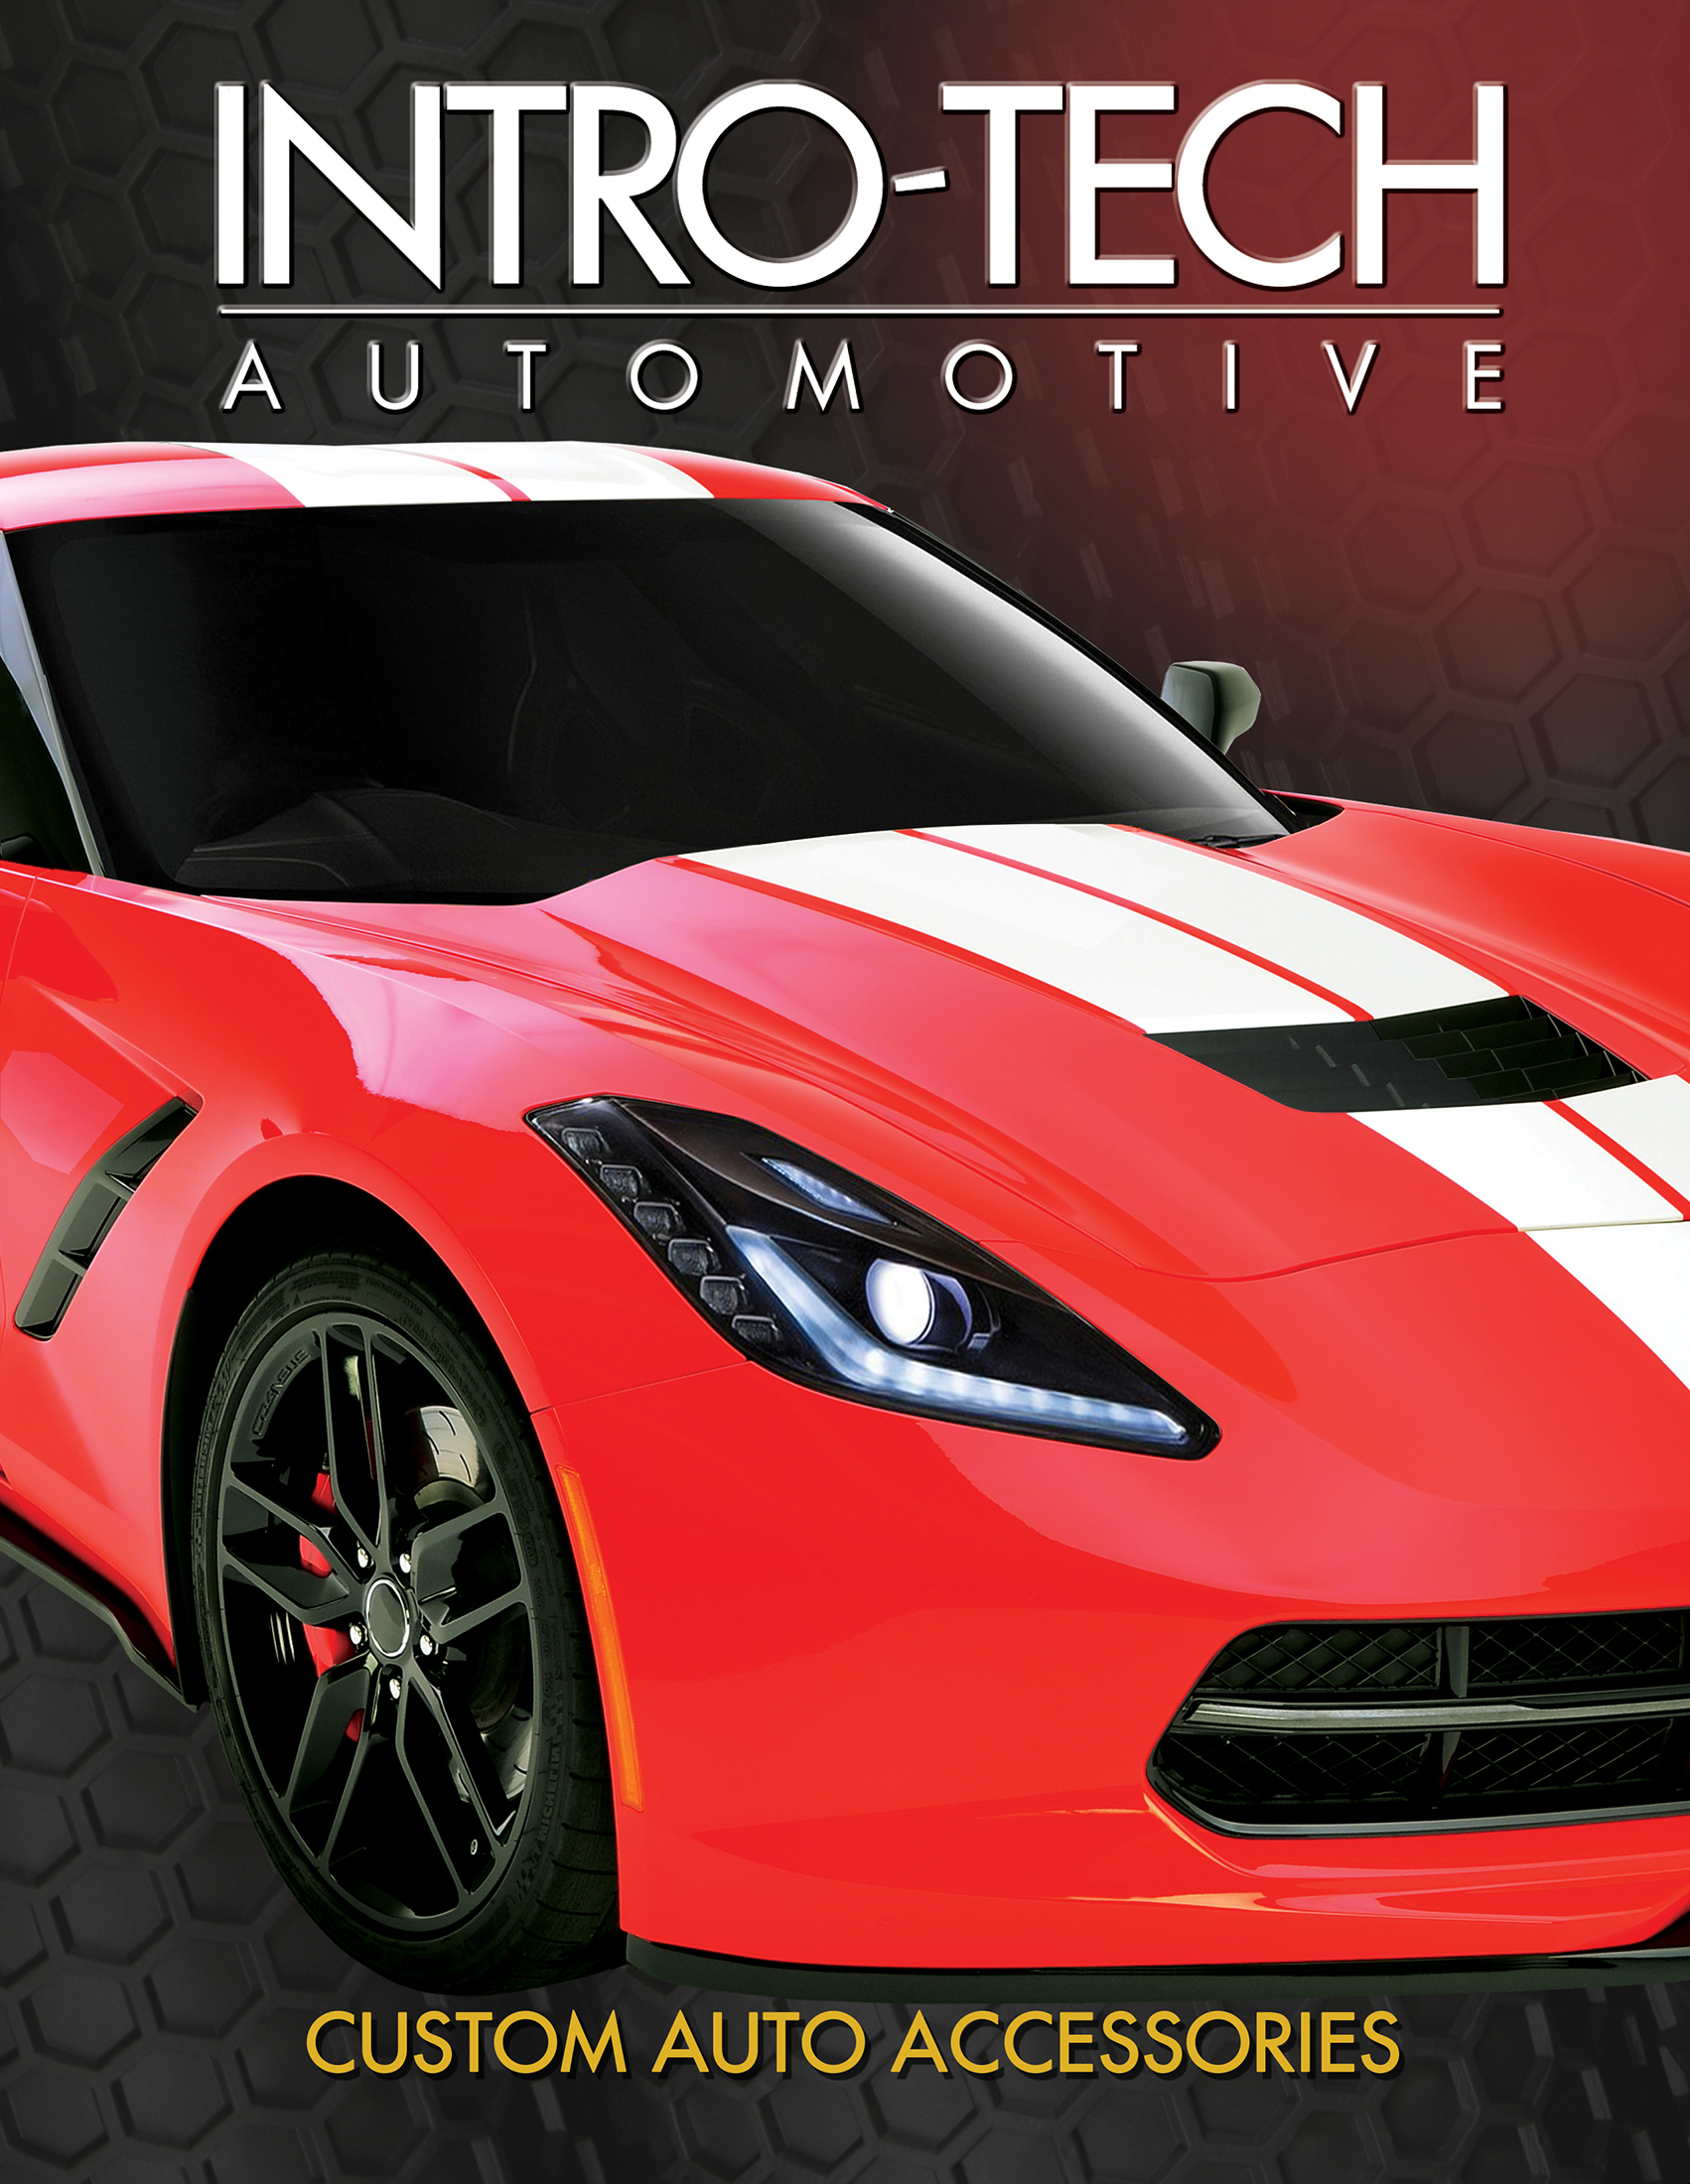 Online Catalog - Intro-Tech Automotive